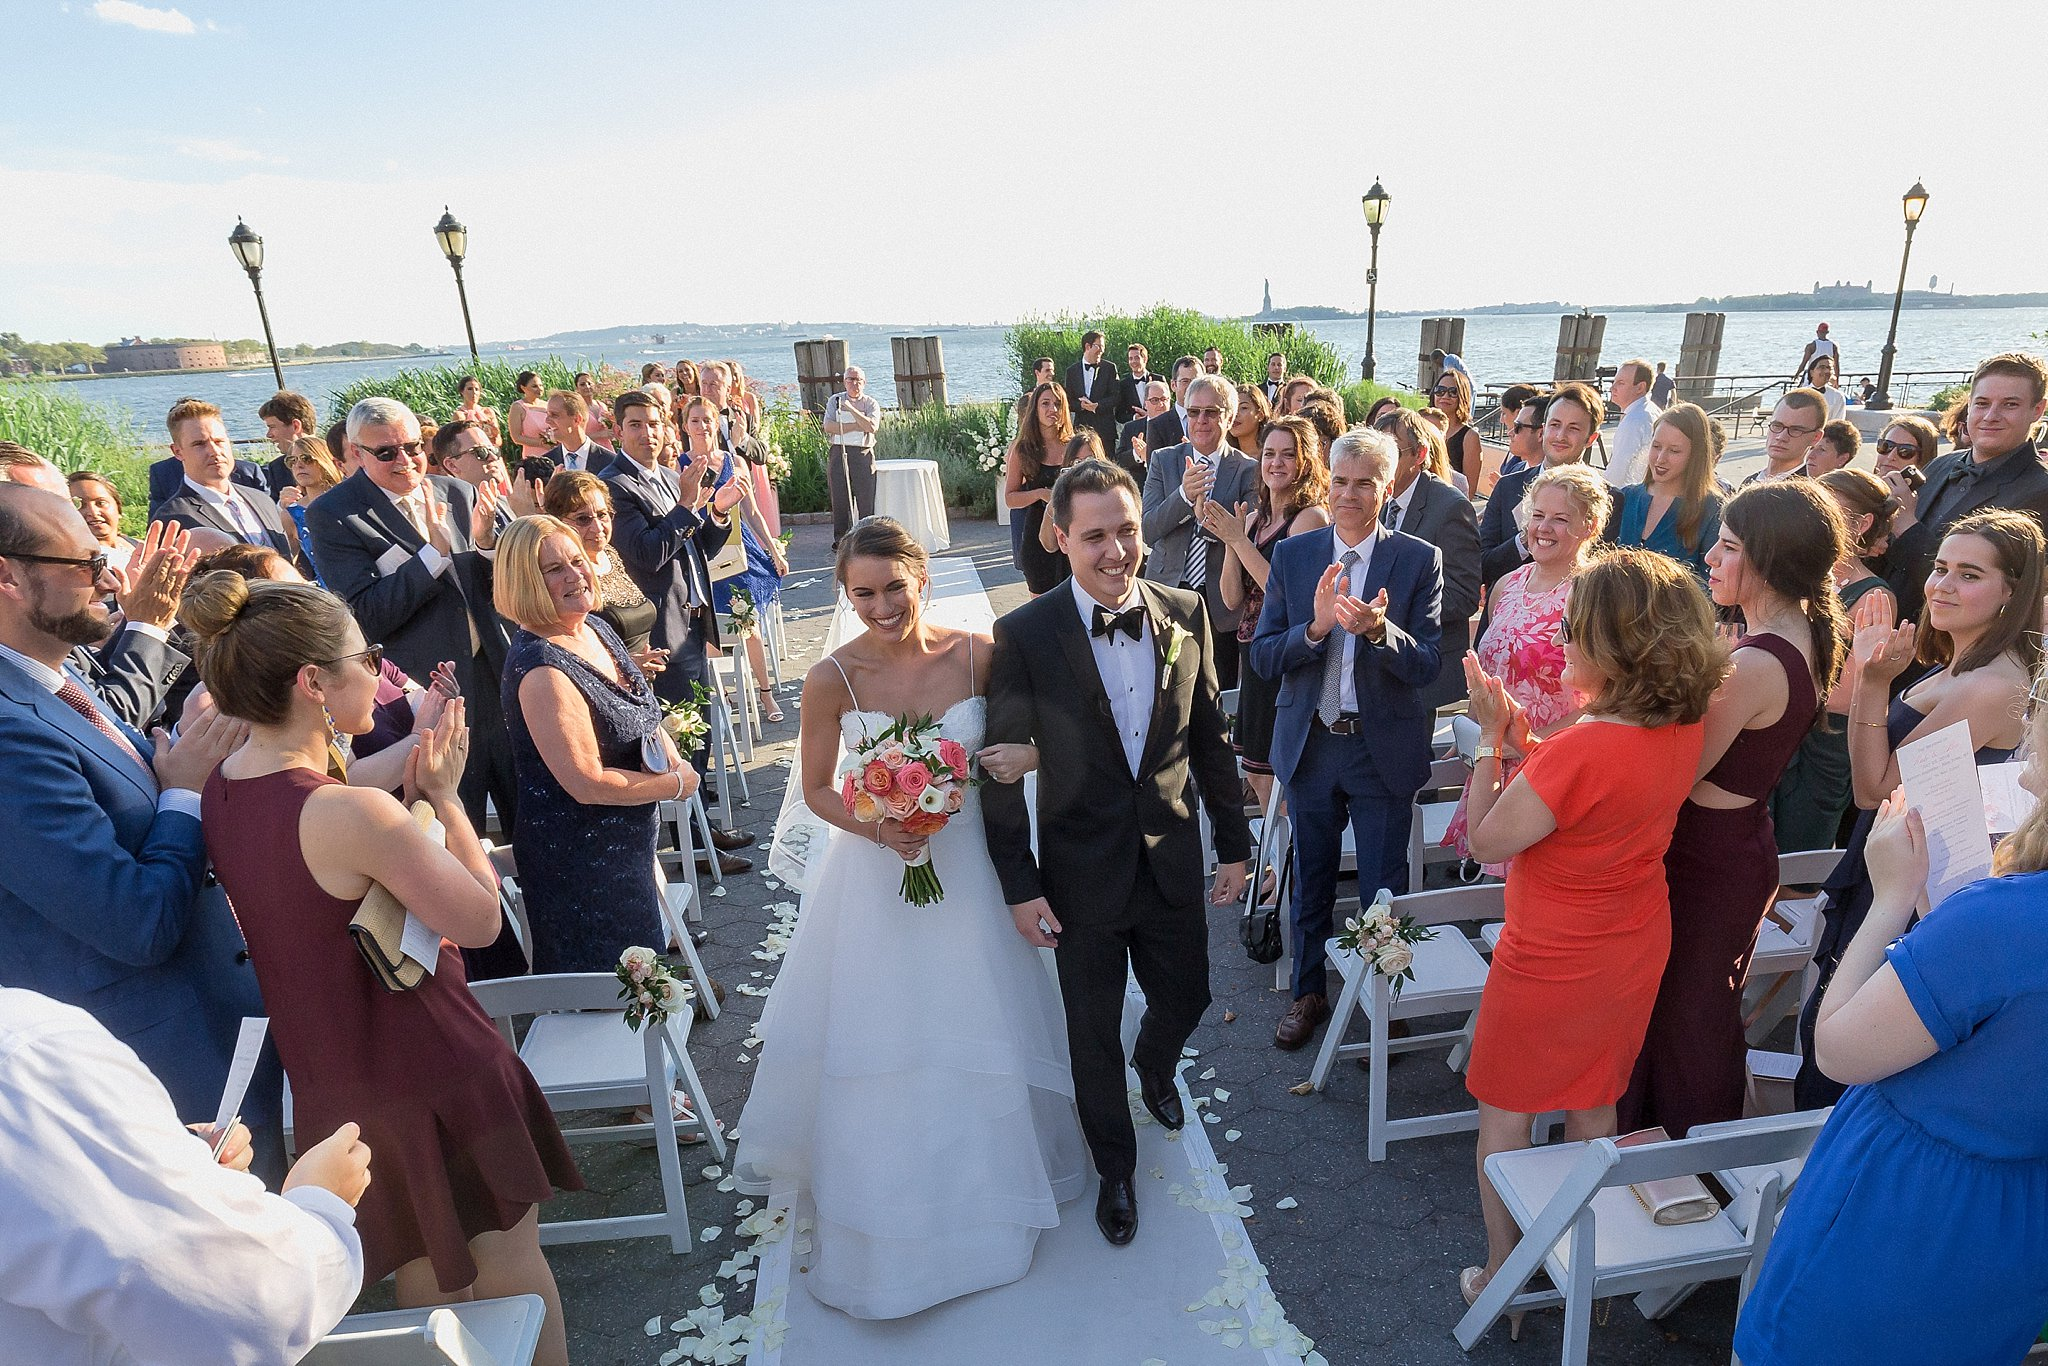 Wedding Ceremony at Battery Garden photographed by Susan Shek Wedding Photography in New York City, NY.